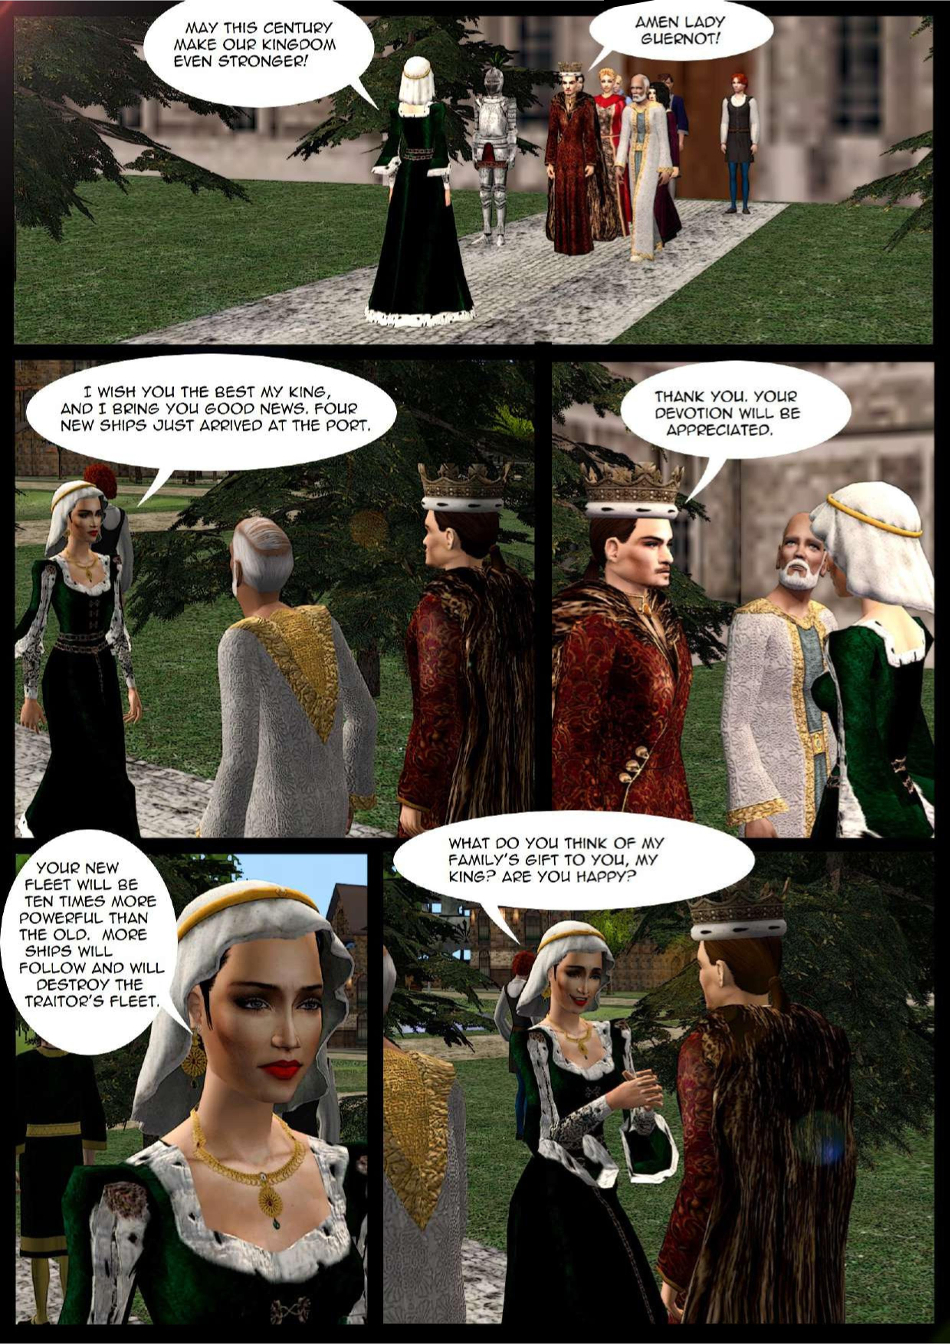 The new countess p19